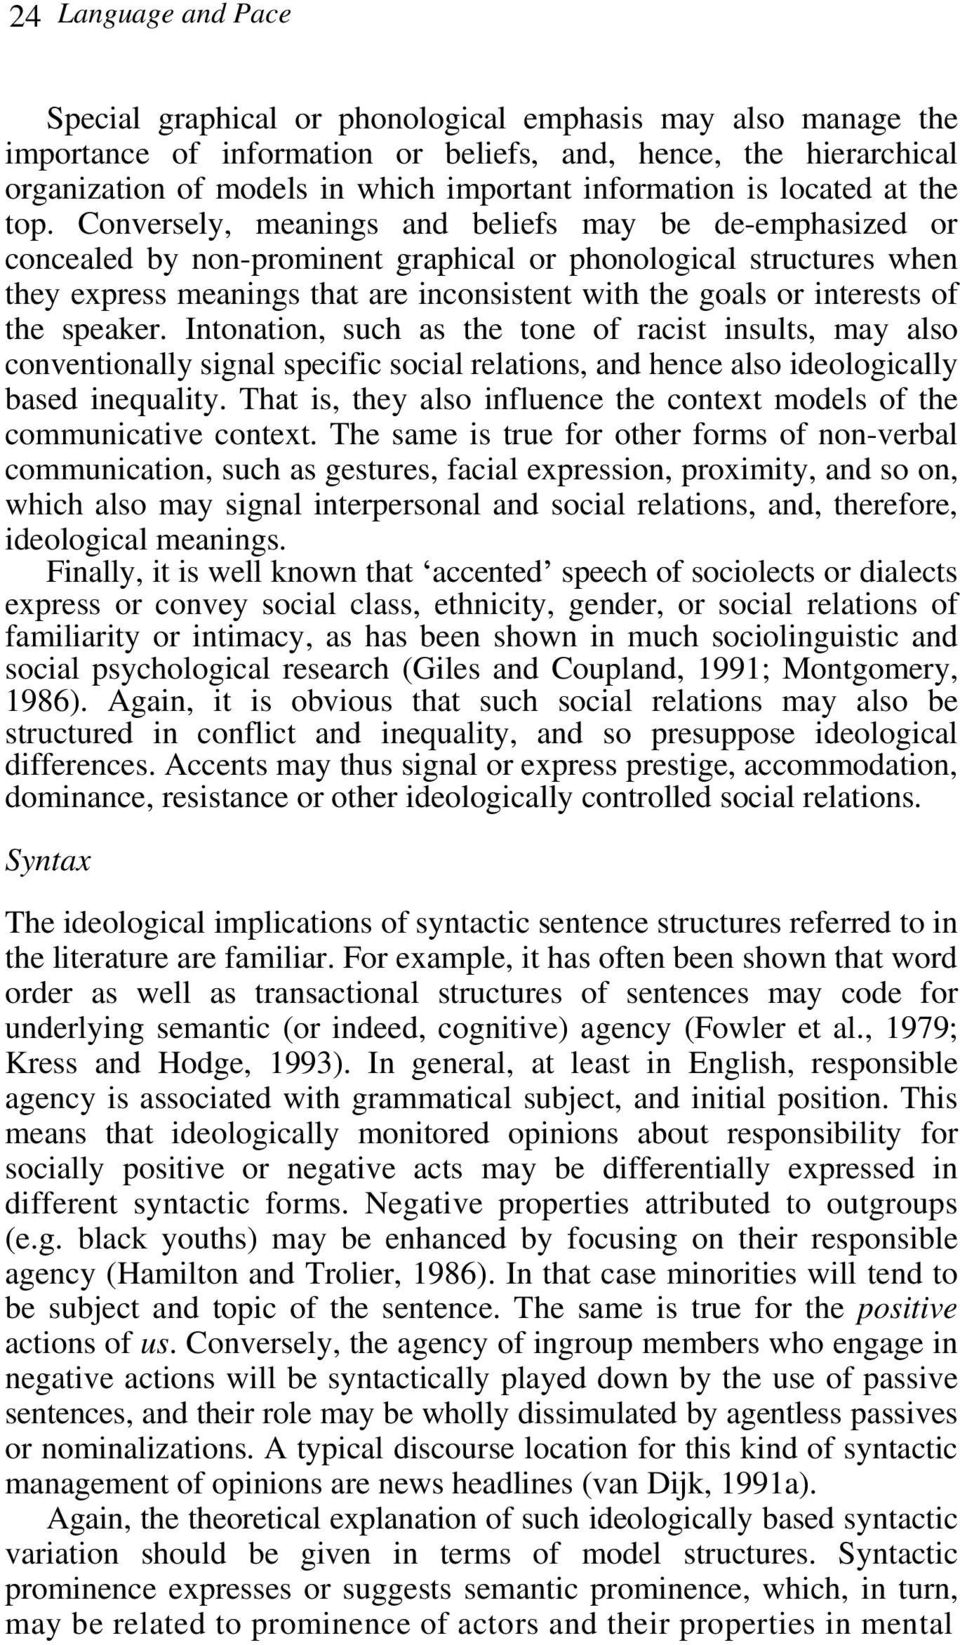 Conversely, meanings and beliefs may be de-emphasized or concealed by non-prominent graphical or phonological structures when they express meanings that are inconsistent with the goals or interests